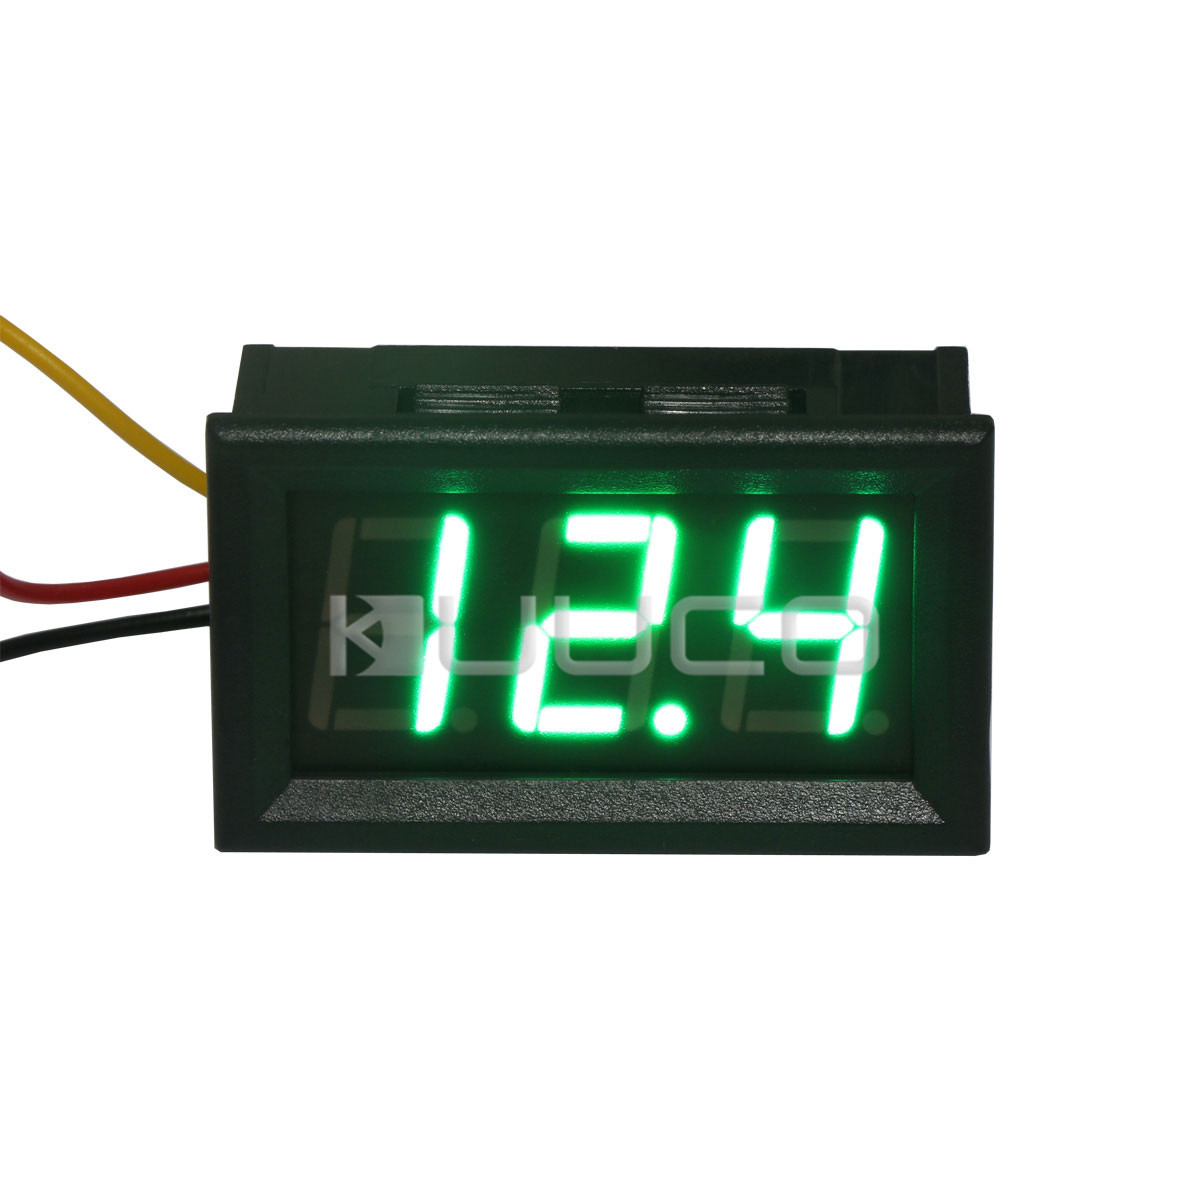 DC 0~300V Green LED Digital Voltmeter Mini Car Volt Monitor Panel Meter DC 12V 24V Voltage Meter Tester